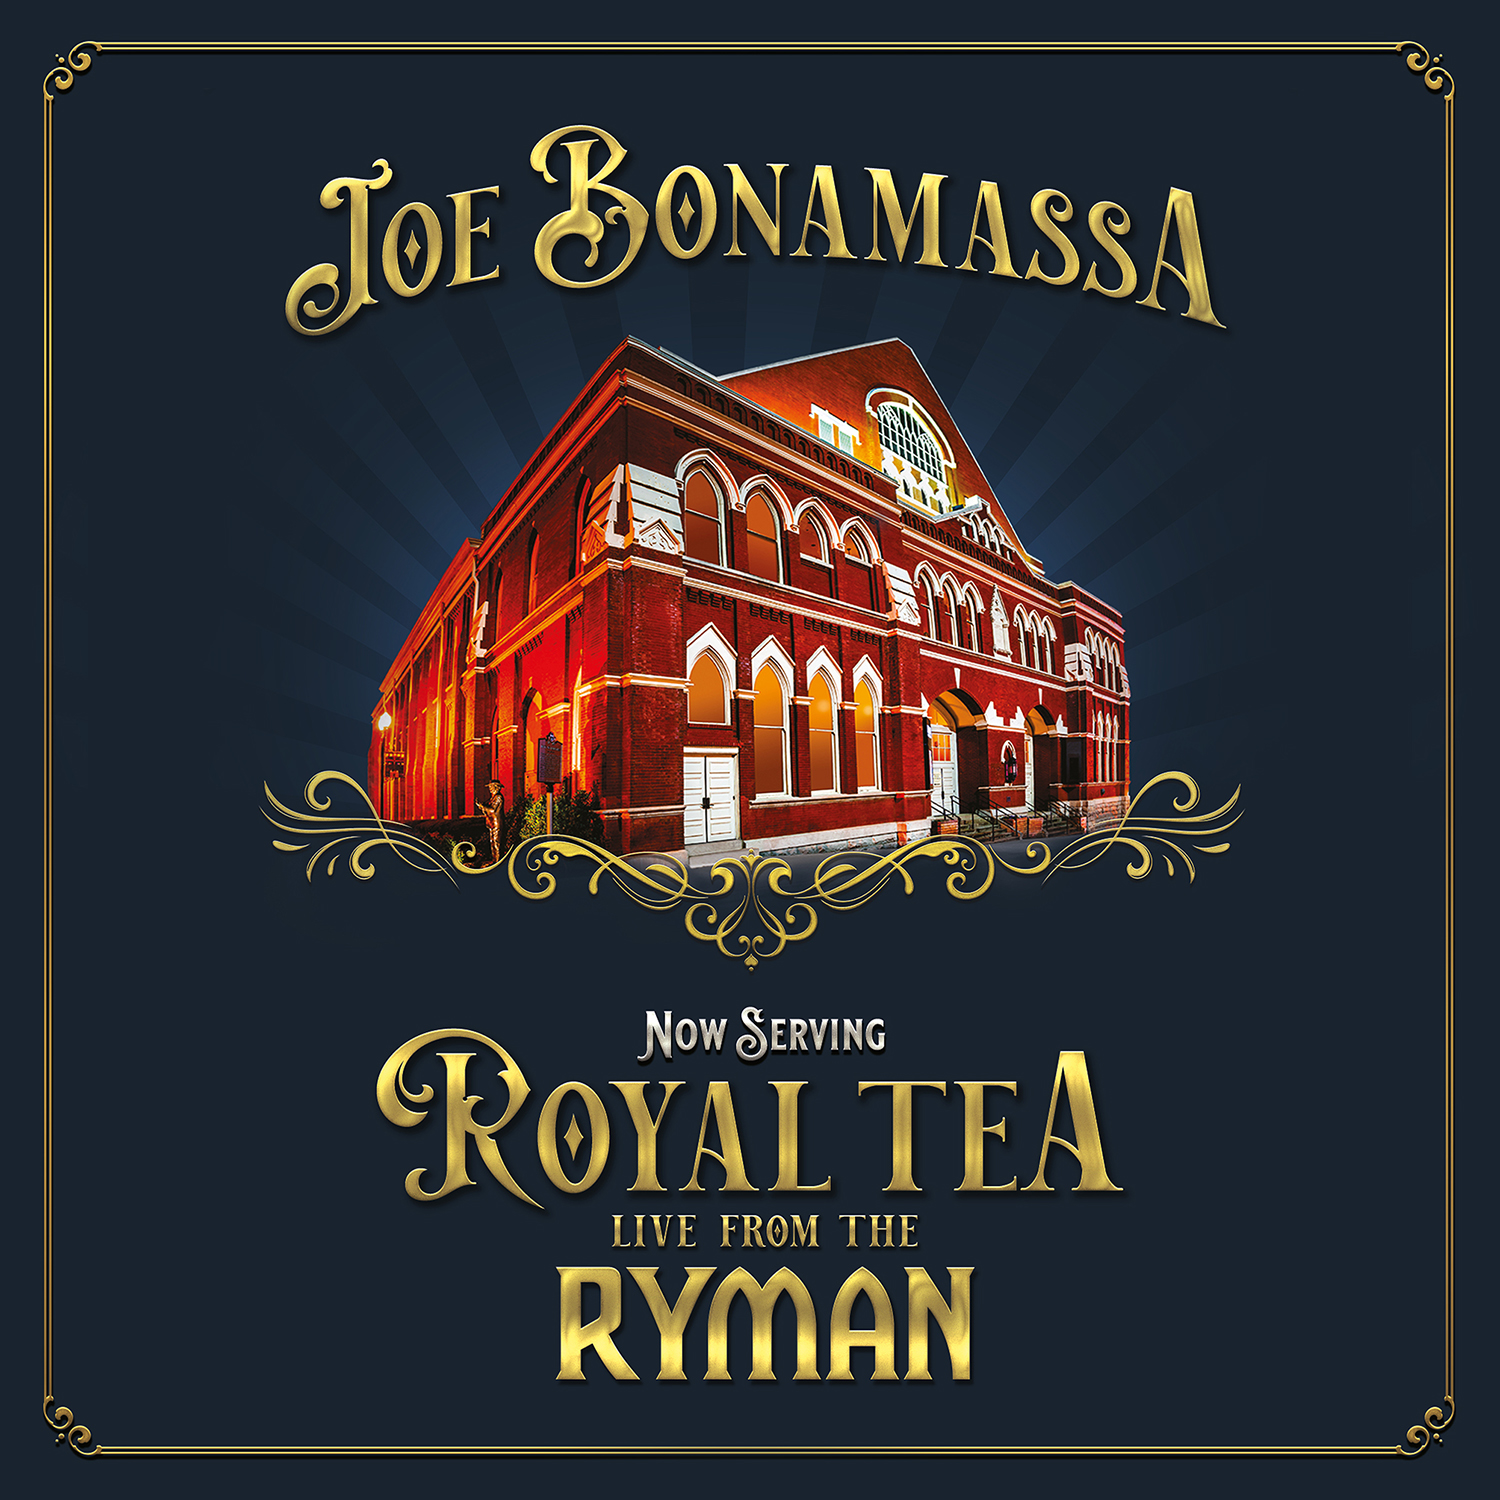 <h5>Joe Bonamassa<br>Now Serving: Royal Tea Live From The Ryman</h5>